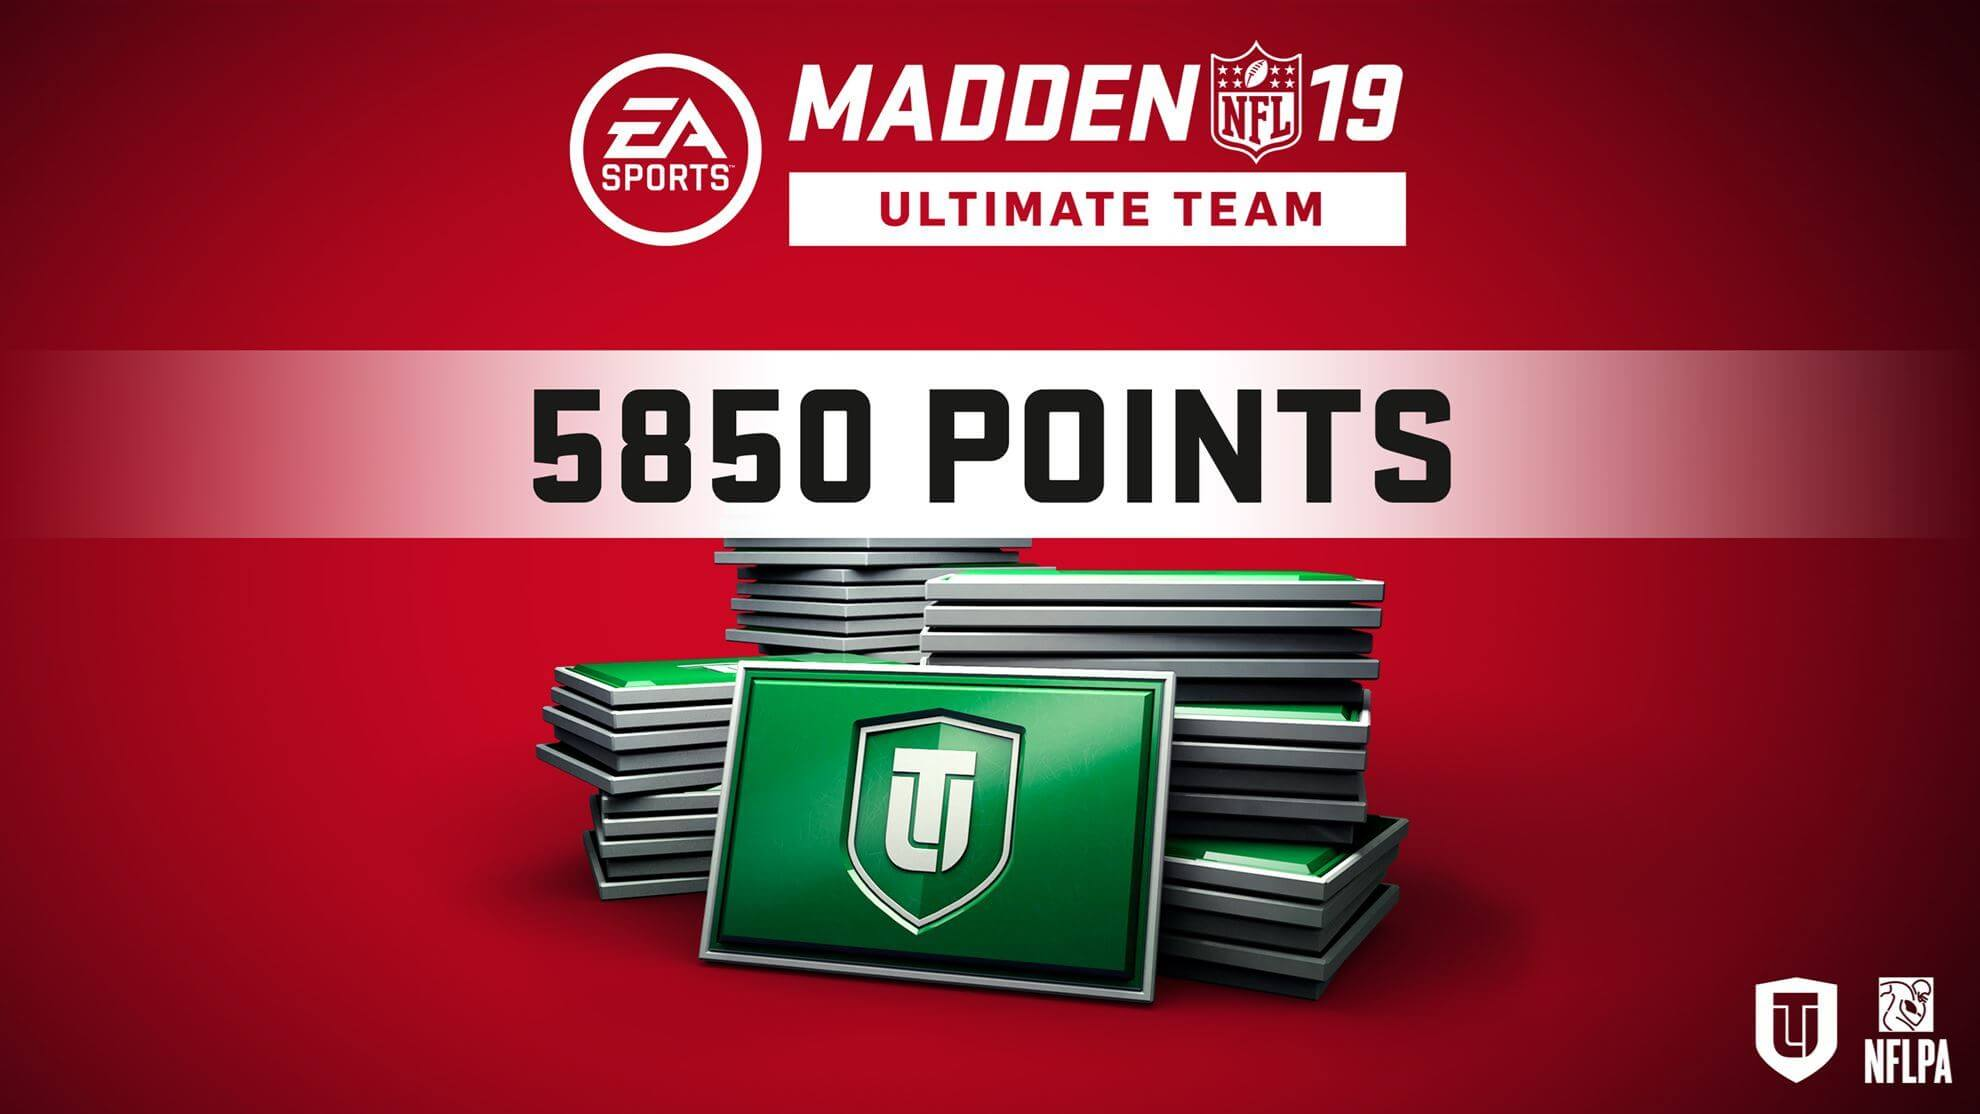 Madden NFL 19 Ultimate Team 5850 Points Pack